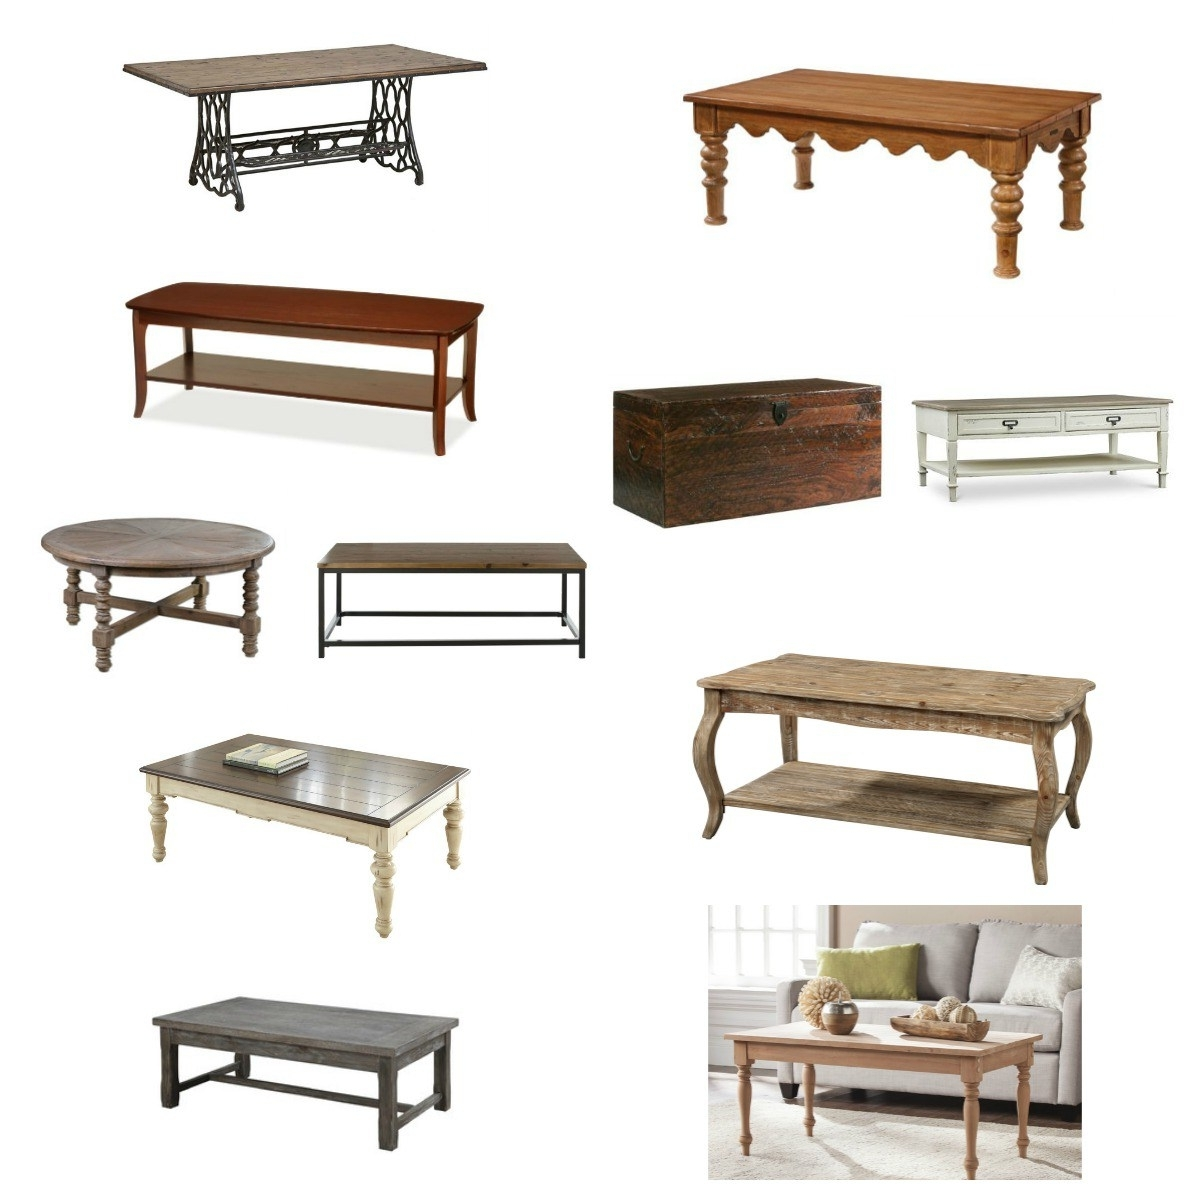 Current Magnolia Home Scallop Antique White Cocktail Tables Regarding 11 Coffee Tables With Farmhouse Charm (View 17 of 20)